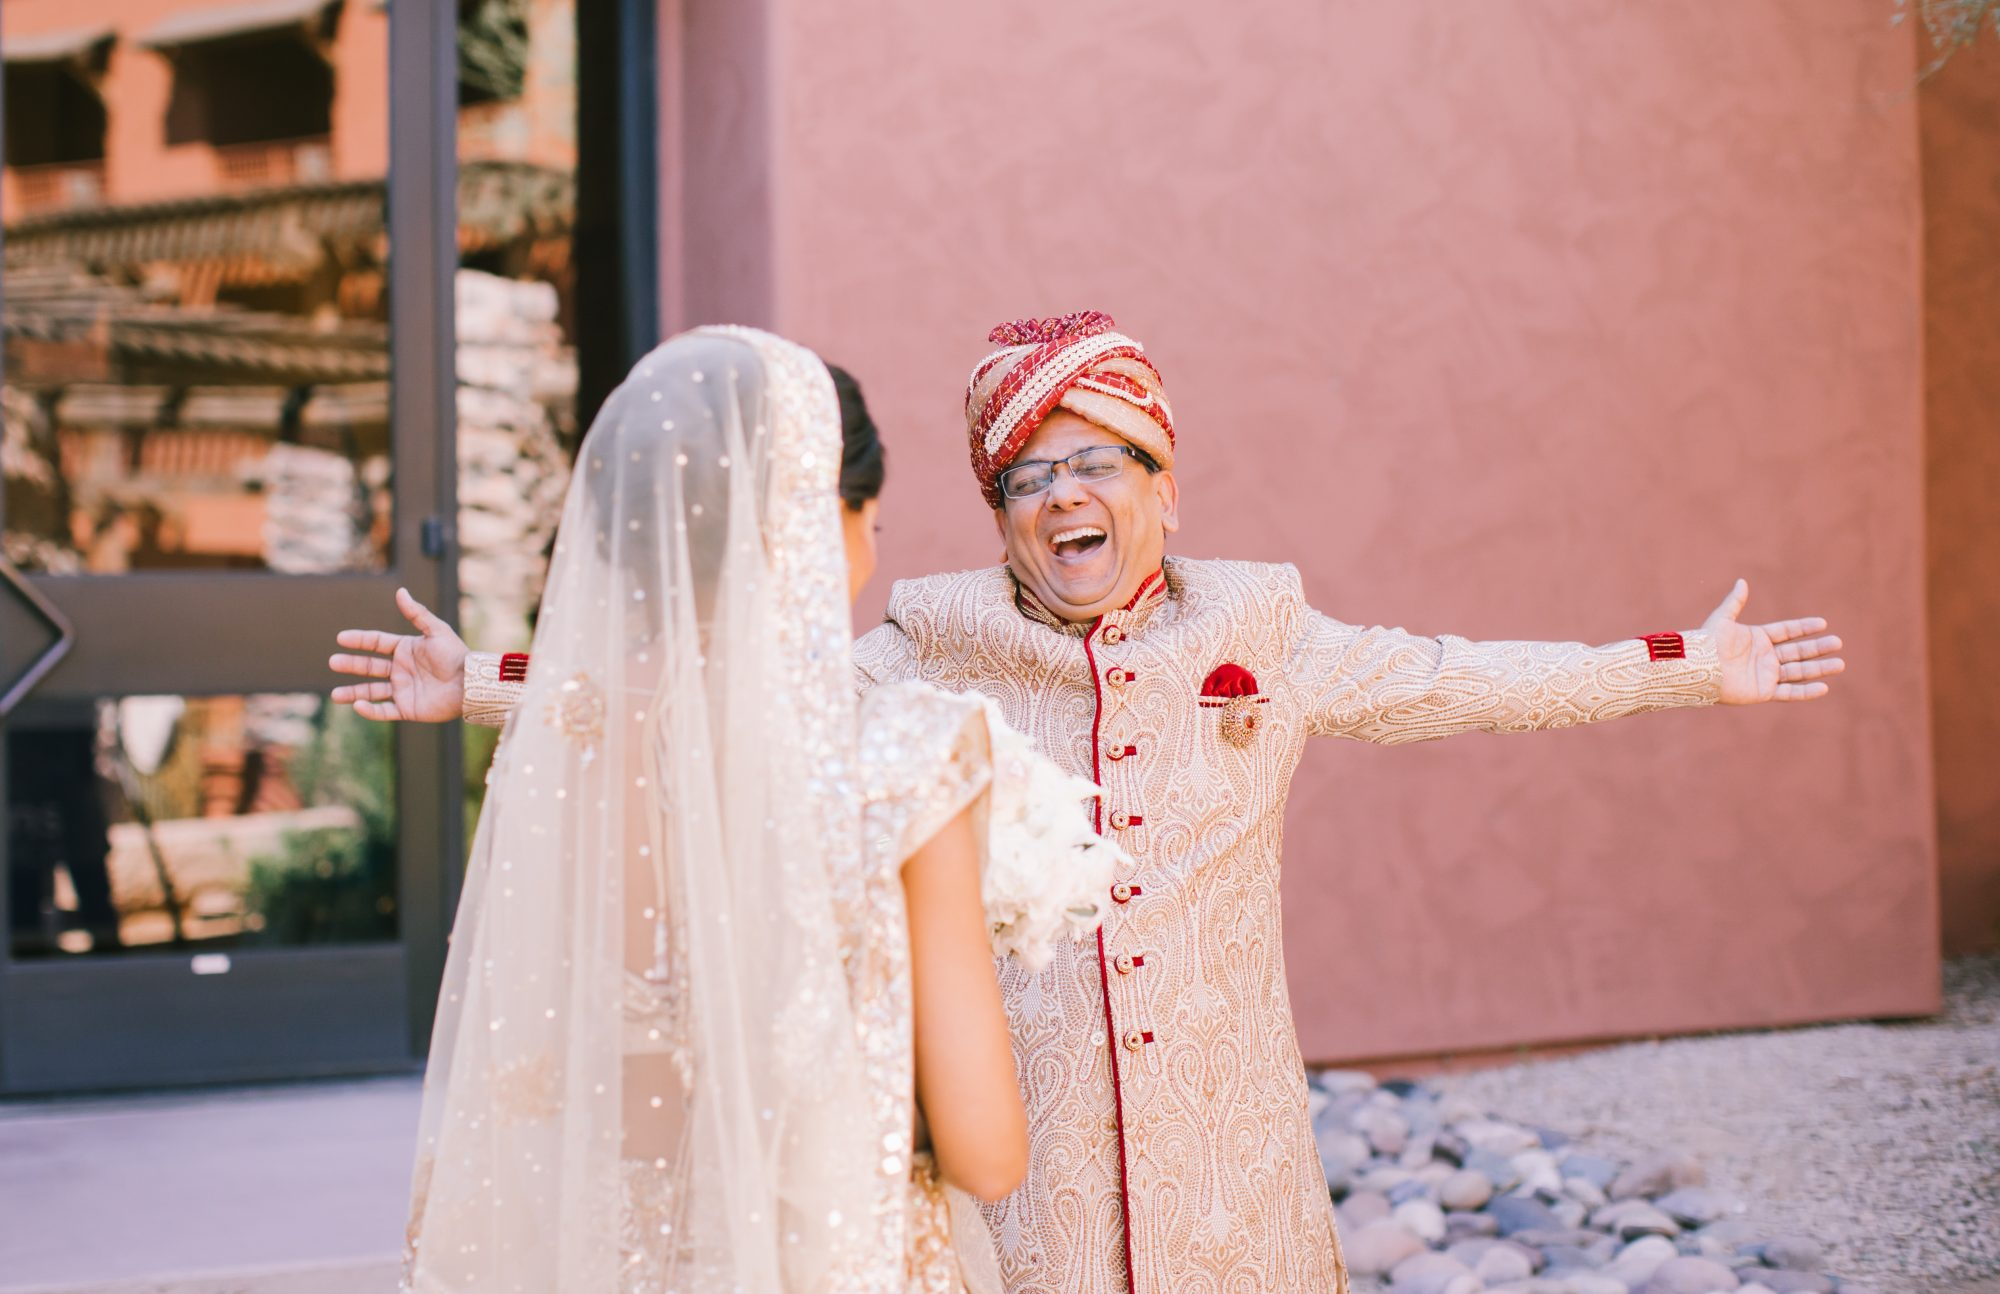 Bride And Groom S Grand Entrance: Bride And Groom Recreate Disney's Royal Aladdin With A